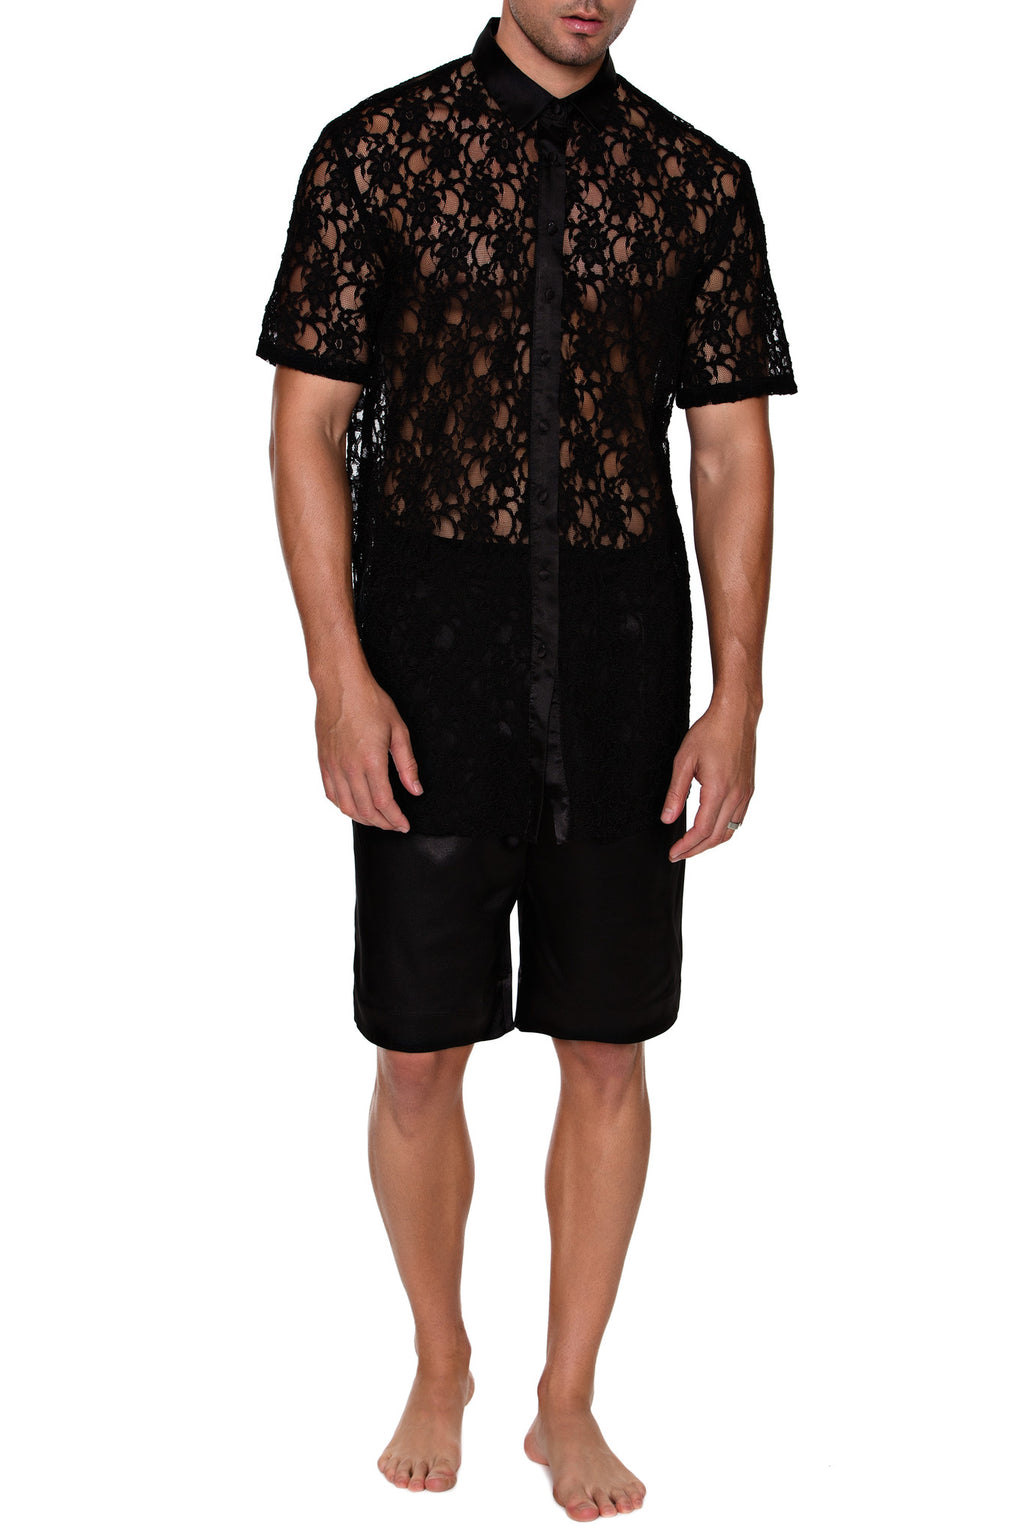 Button Up Shirt - Short Sleeve  (LACE) - MENAGERIE Intimates MENS Lingerie